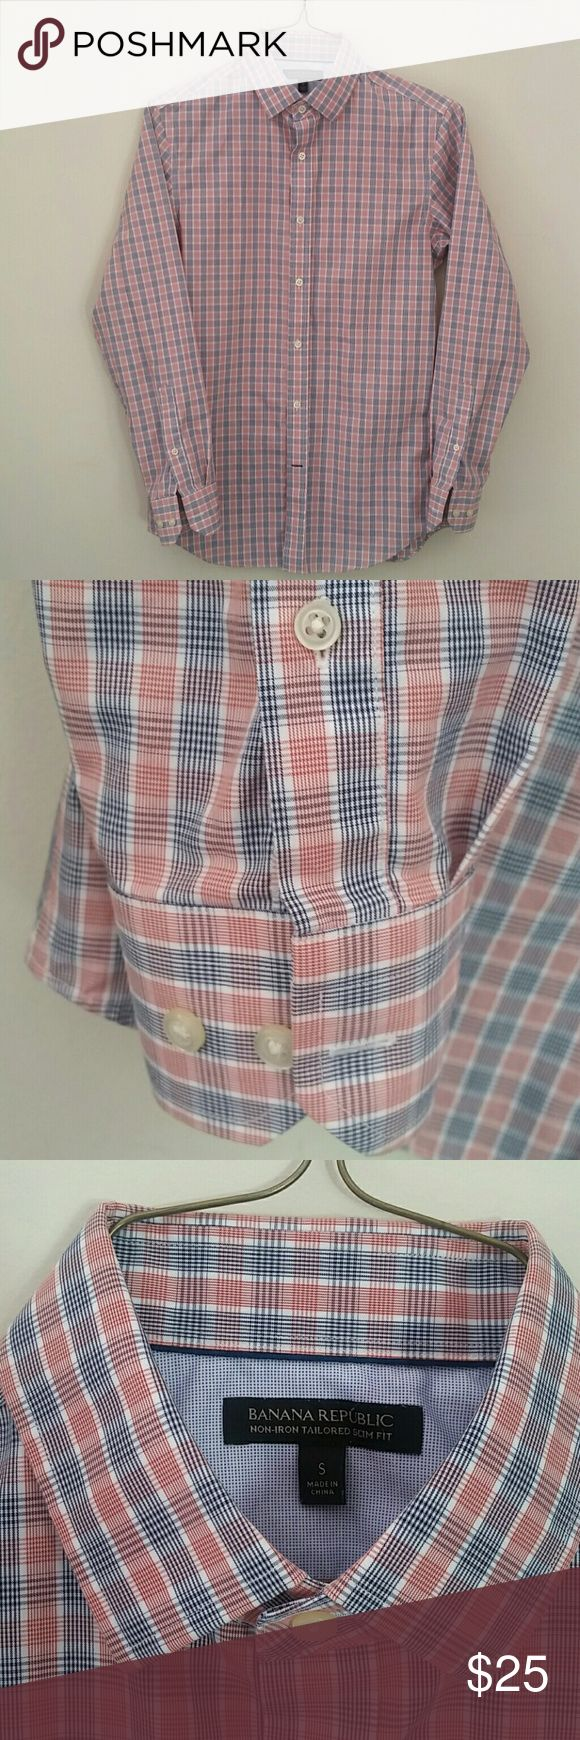 Banana Republic Men's Shirt Tailored Slim Fit. Non-iron. 100% cotton. Red and Navy micro plaid. Like new. Banana Republic Shirts Dress Shirts